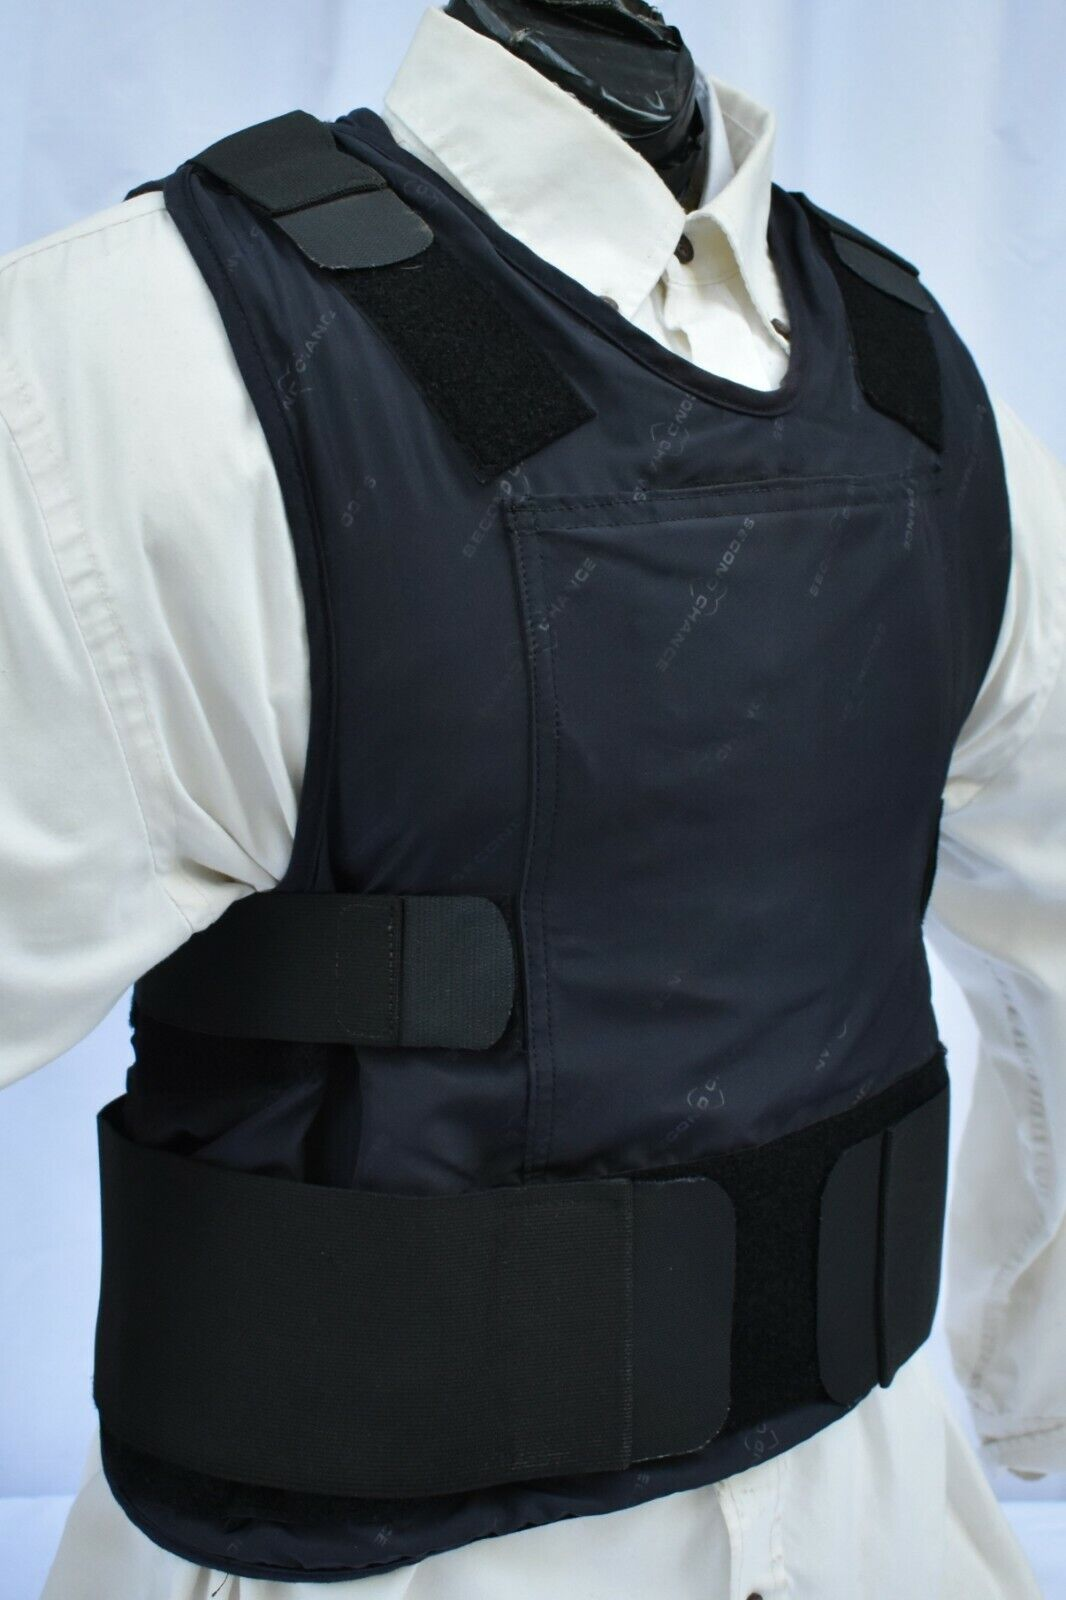 3XL IIIA Lo Vis    Concealable Body Armor Carrier BulletProof Vest with Inserts  the best online store offer